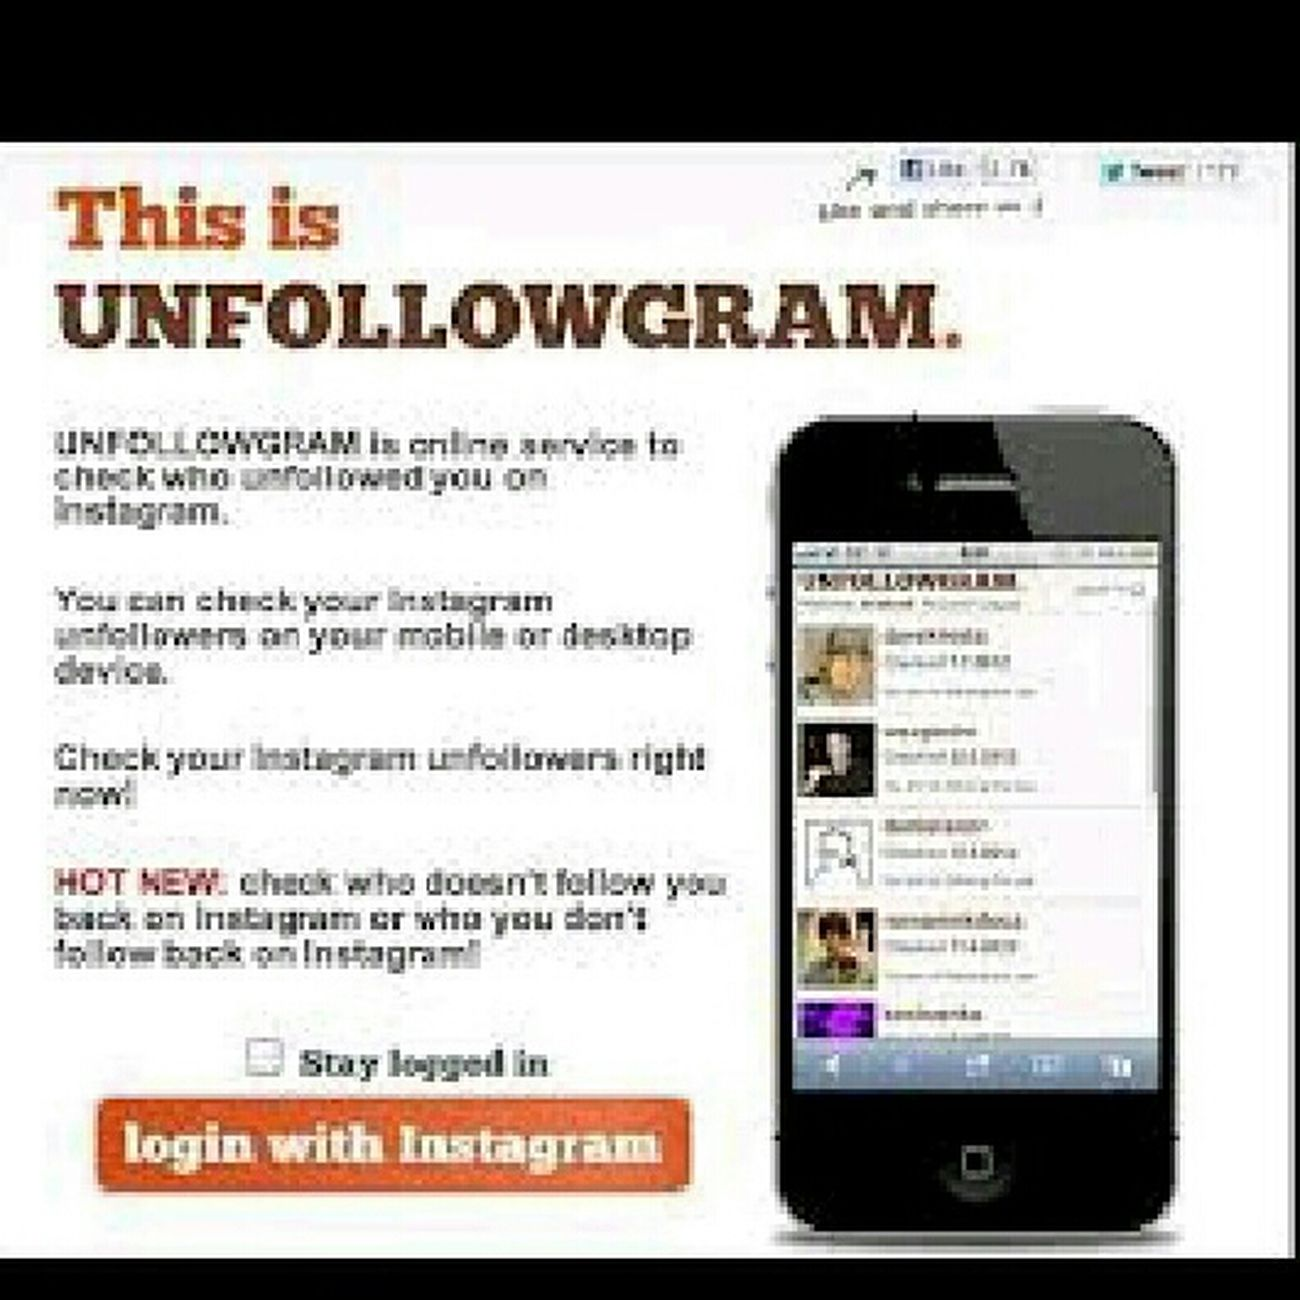 Follow Back On Instagram Or Get Unfollowed